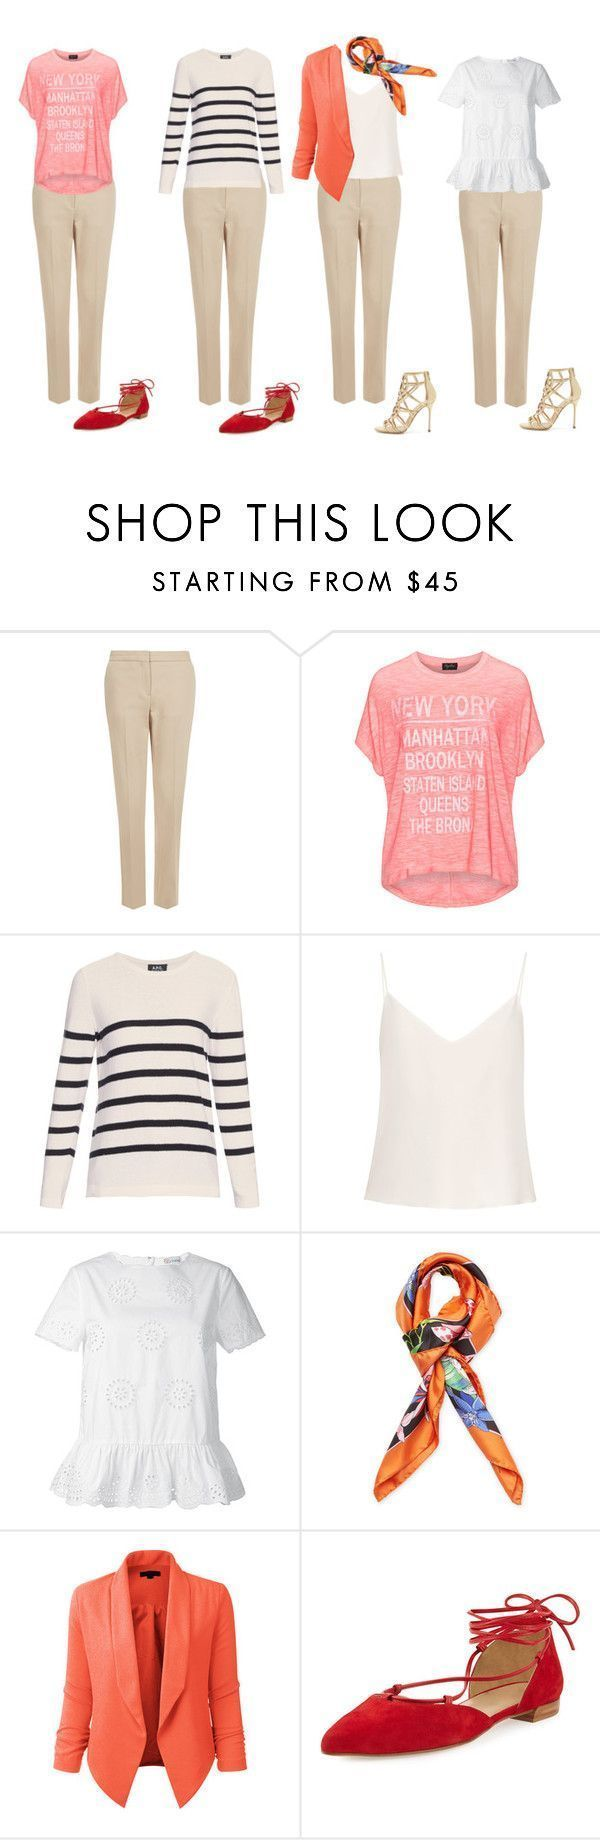 """Summer outfit neutral trousers"" by olga-kim-b ❤ liked on Polyvore featuring Monsoon, Replace, A.P.C., Raey, RED Valentino, Blumarine, LE3NO, Stuart Weitzman and Sergio Rossi #sergiorossioutfit"